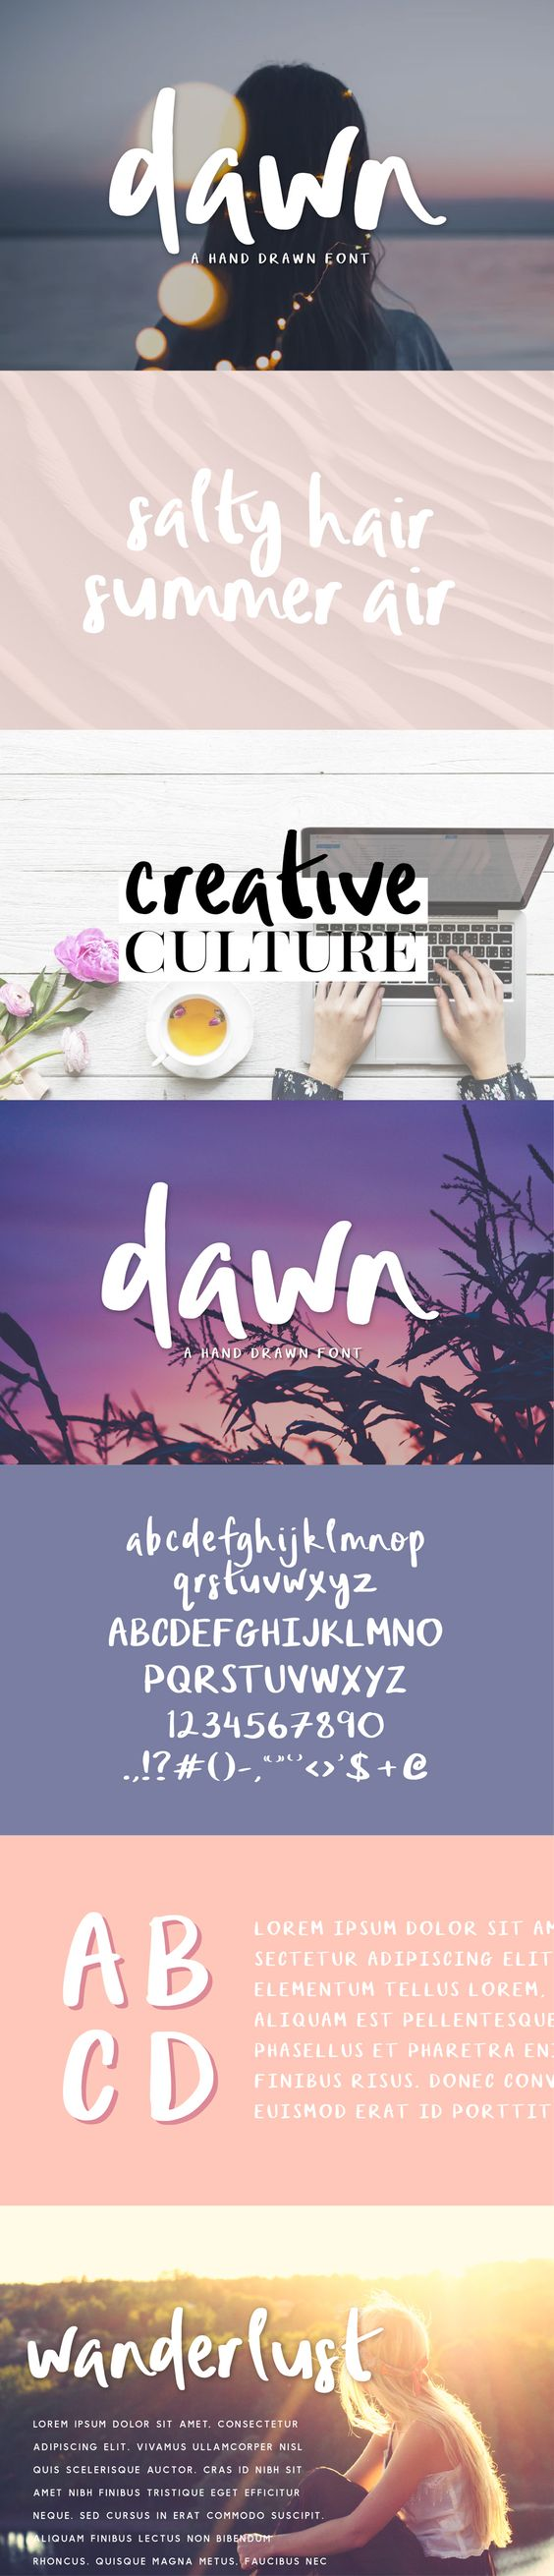 Dawn-Handwritten-Brush-Font-by-Big-Cat-Creative1.jpg